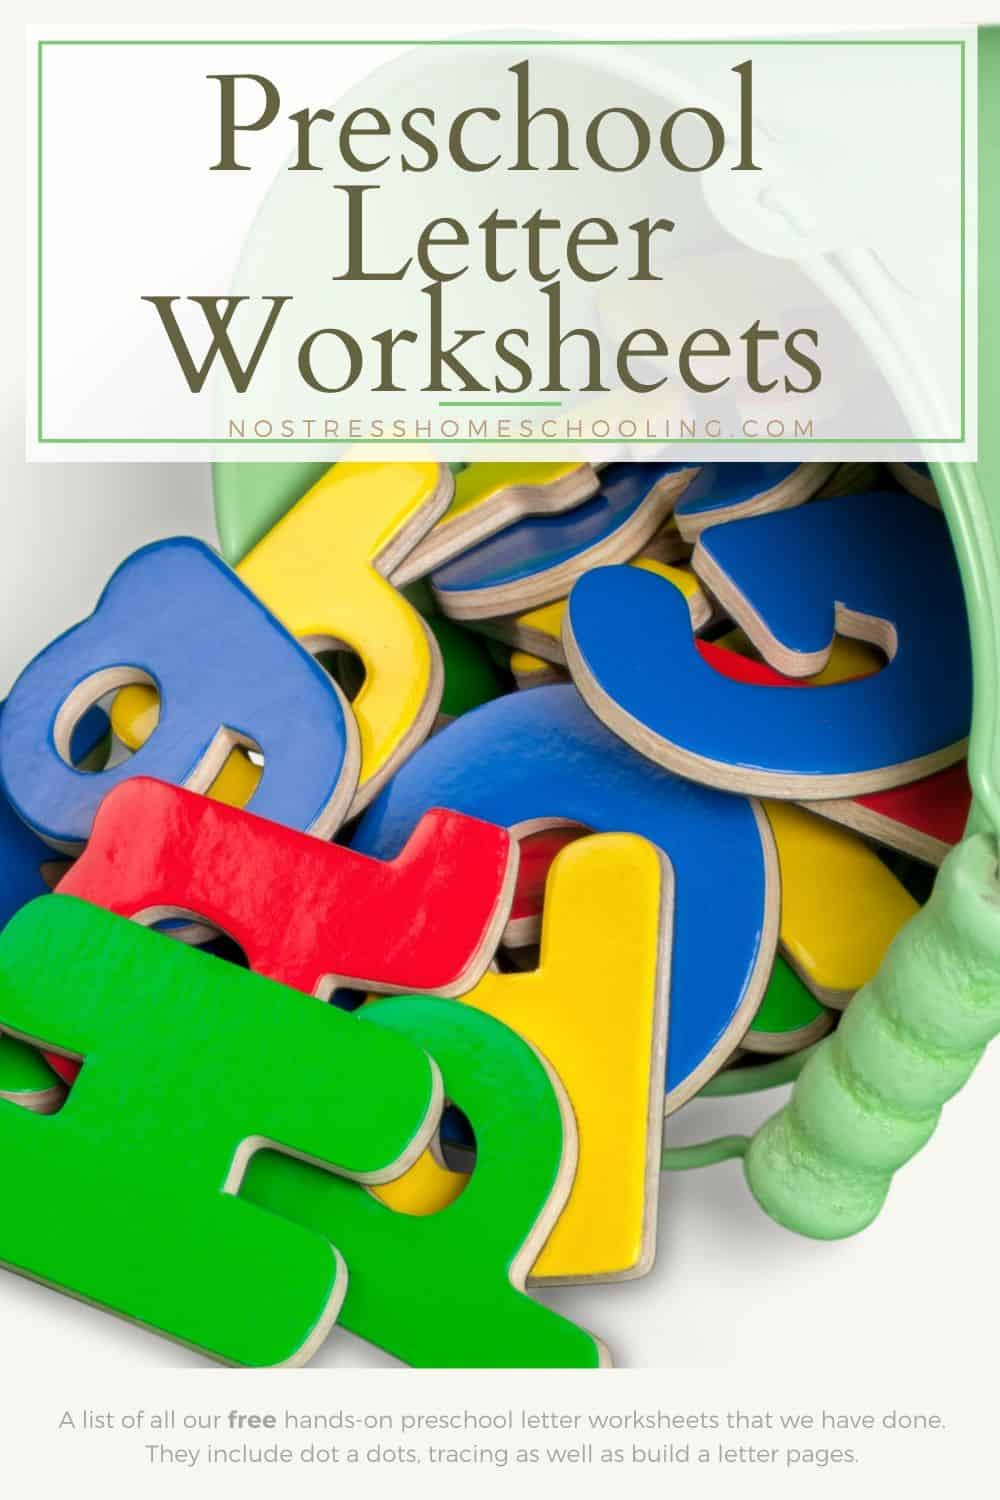 A list of all our free hands-on preschool letter worksheets that we have done. They include dot a dots, as well as tracing